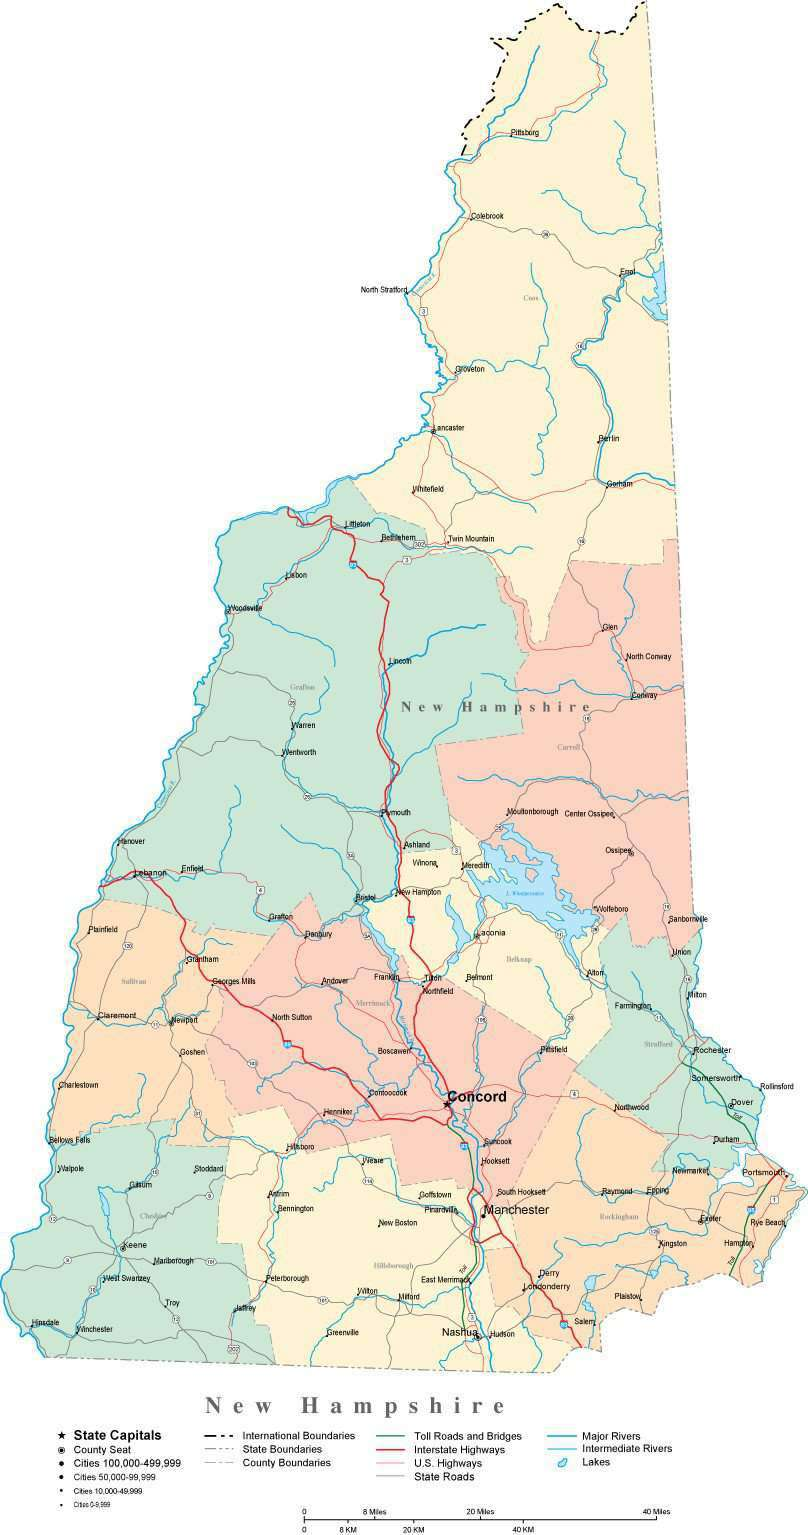 New Hampshire State Map - Multi-Color Cut-Out Style - with Counties, on